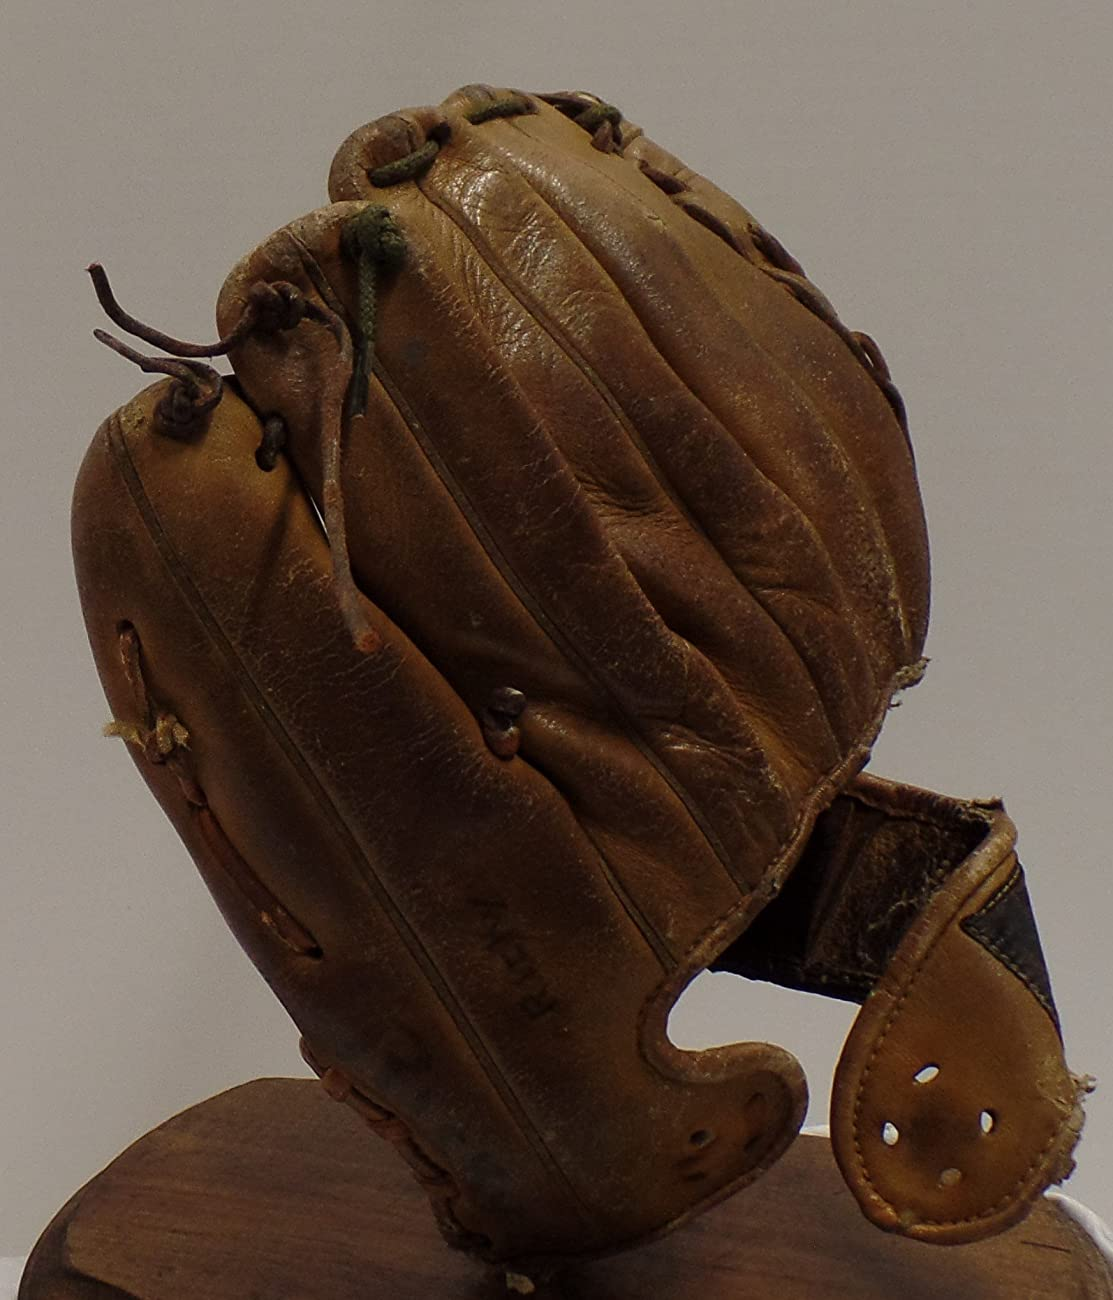 Vintage Clete Boyer Autograph Model 1035 Baseball Glove - Great for Mancave or Baseball Themed Decor (Free Shipping) 5